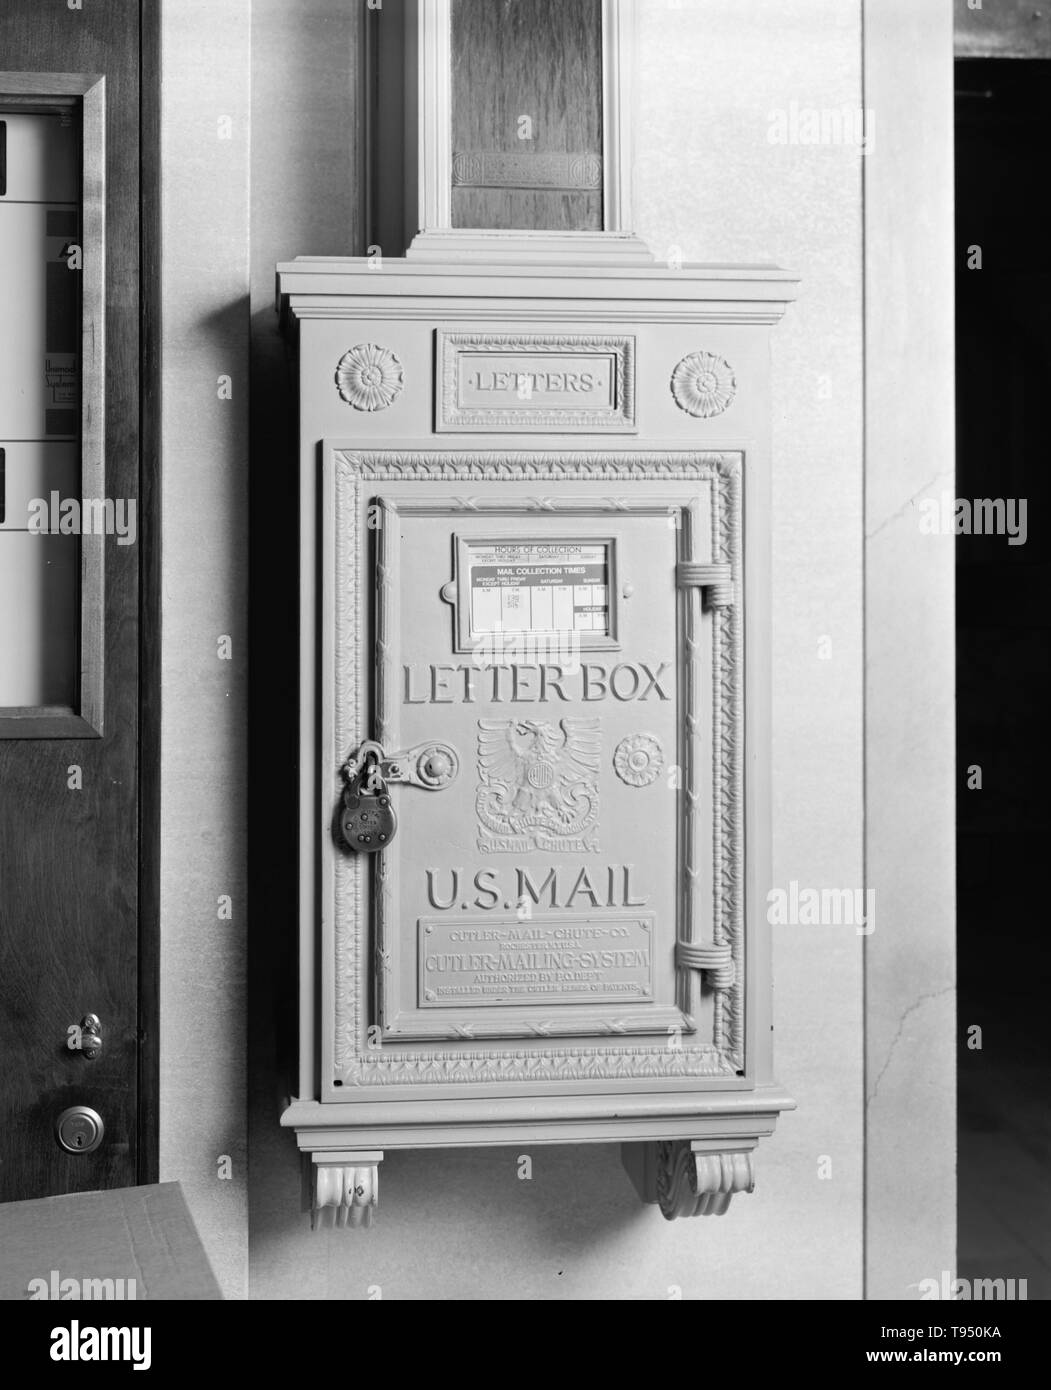 Public Mailbox Black and White Stock Photos & Images - Alamy